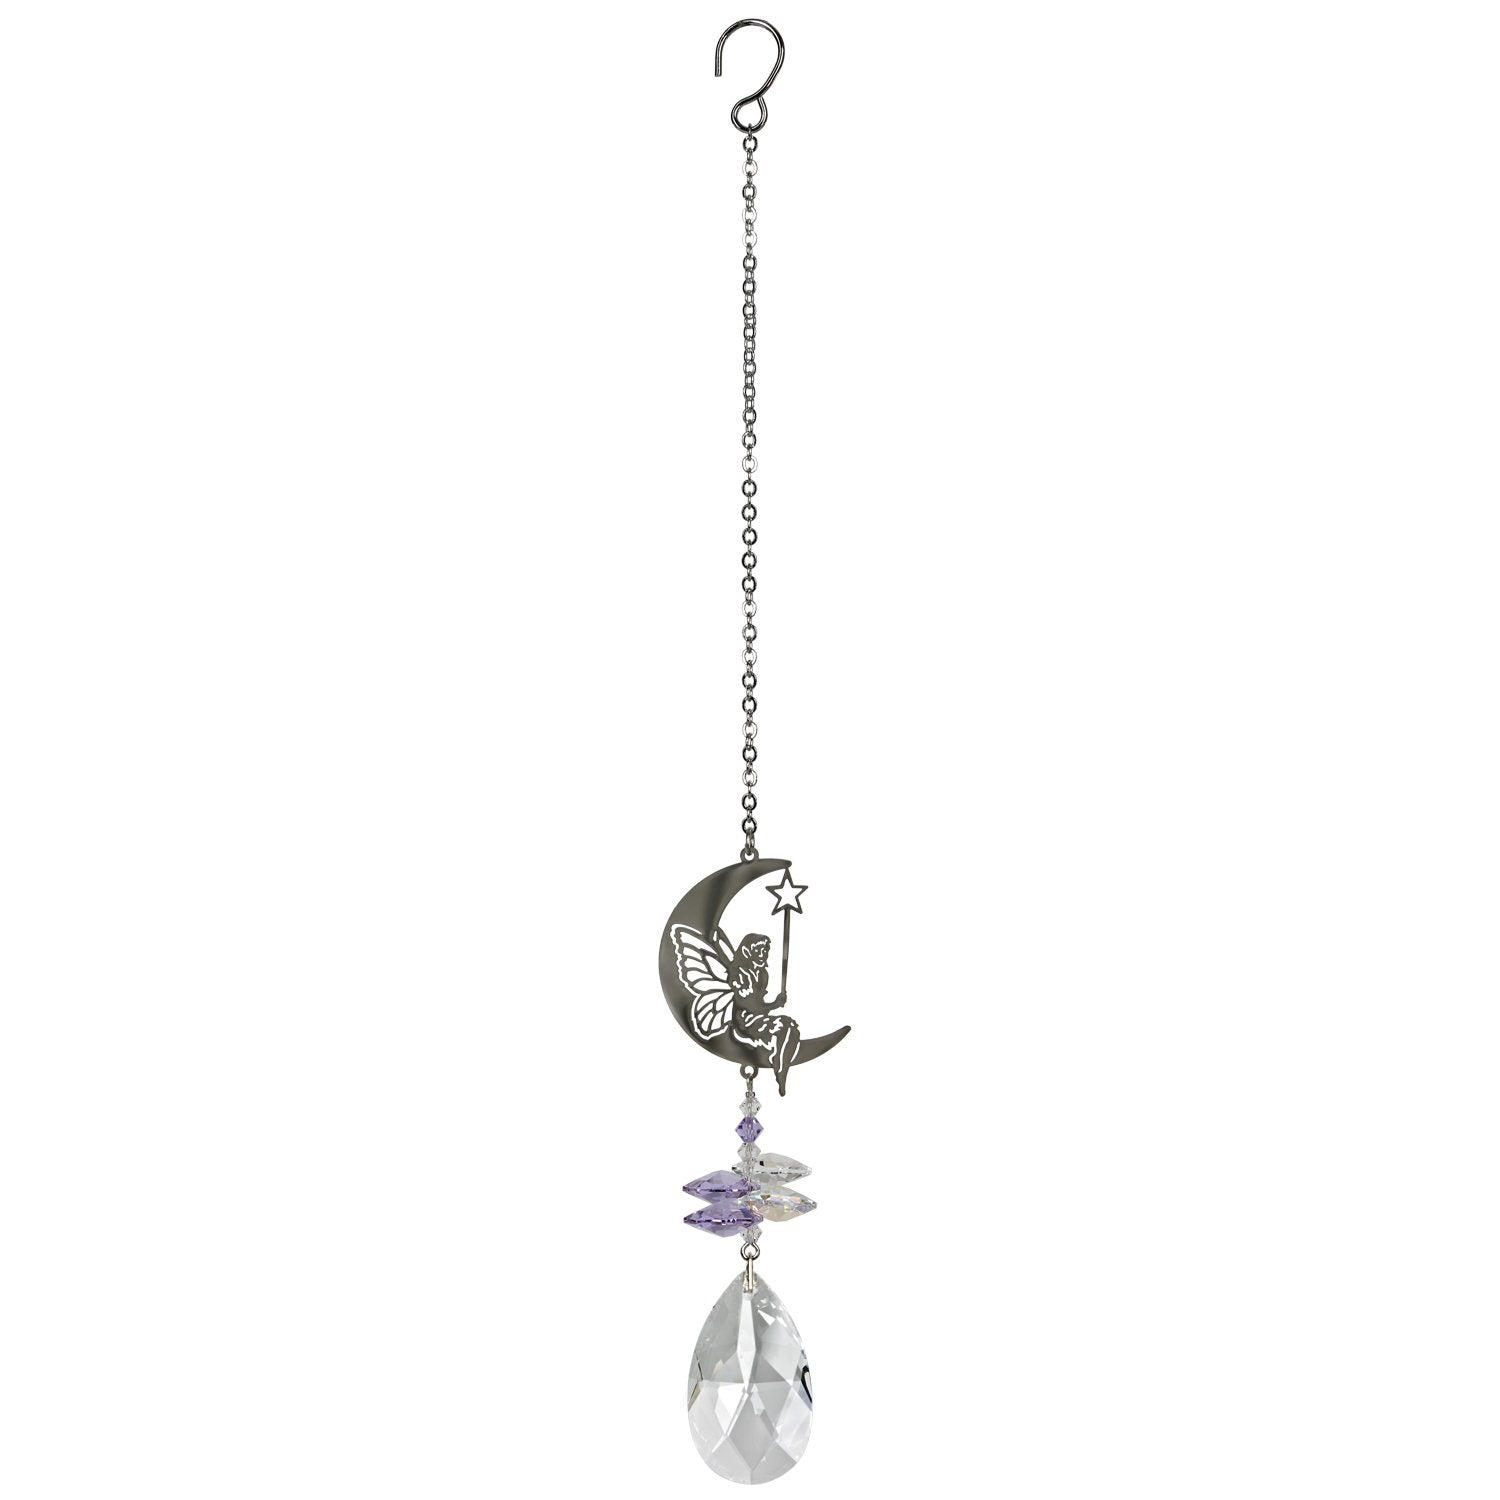 Crystal Fantasy Suncatcher - Fairy full product image